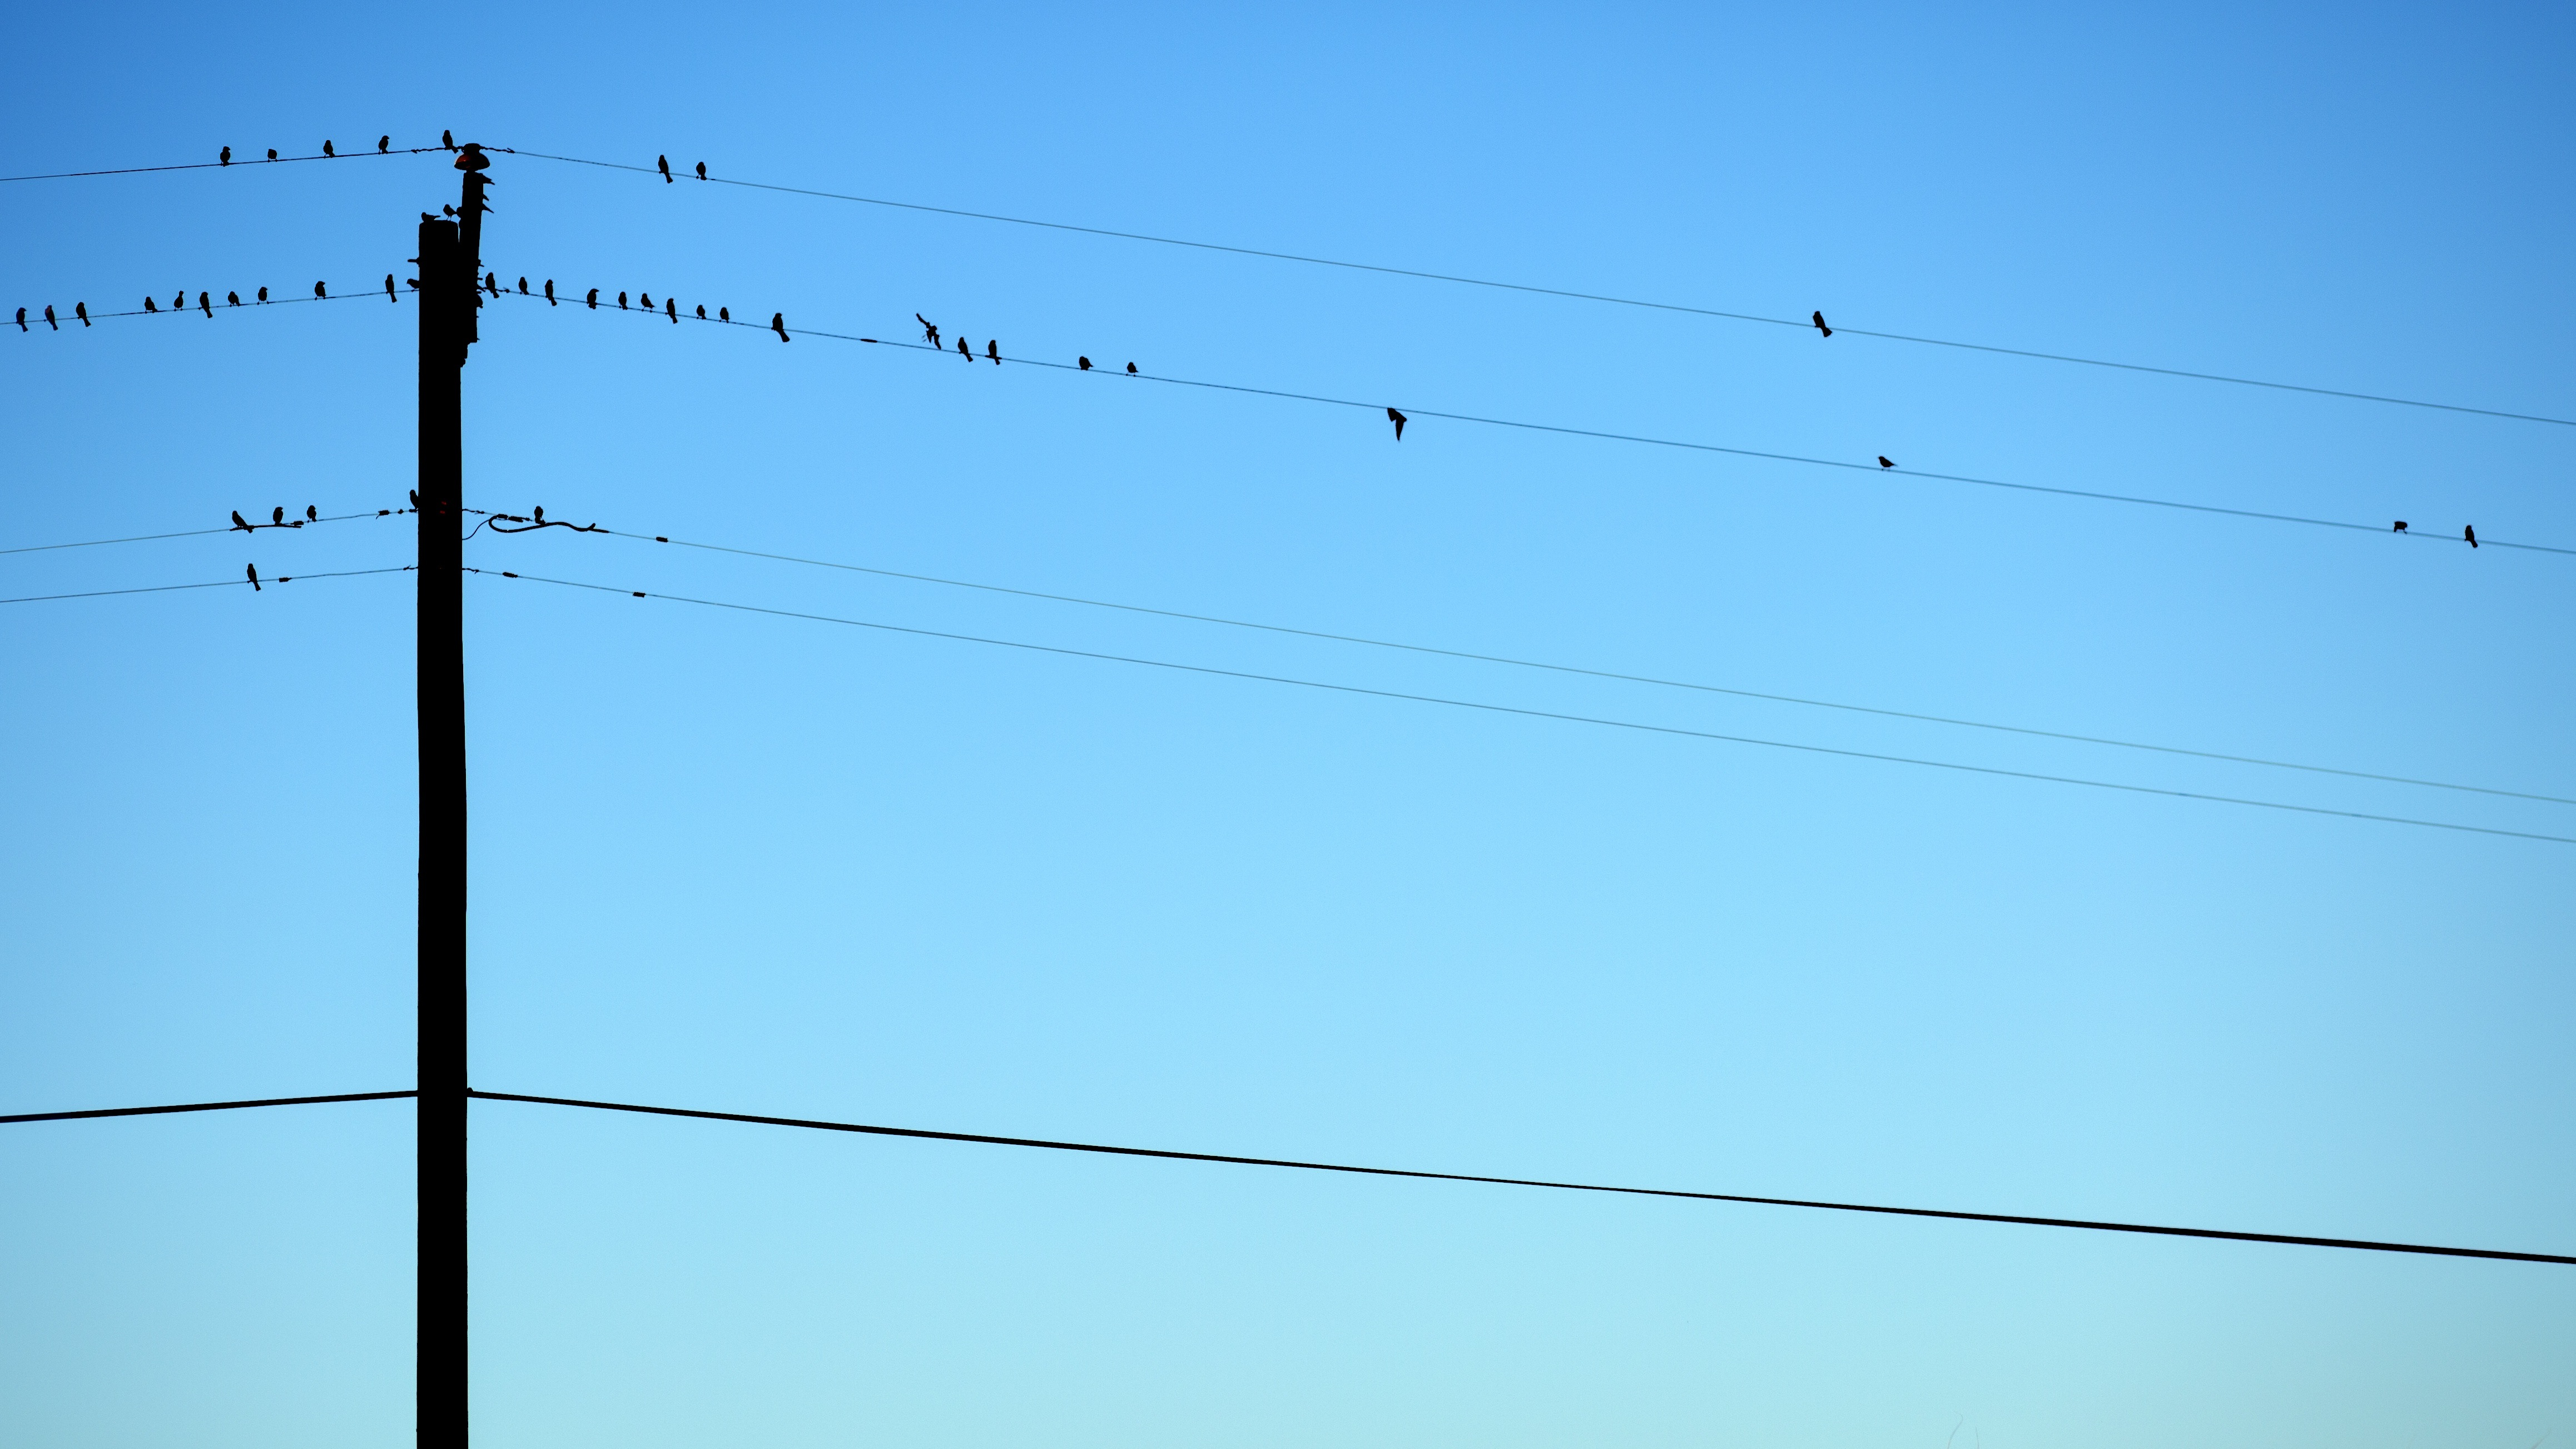 Birds on wires, cables, electricity, birds, posing, rest, rest, sky, blue, shadow, post, light